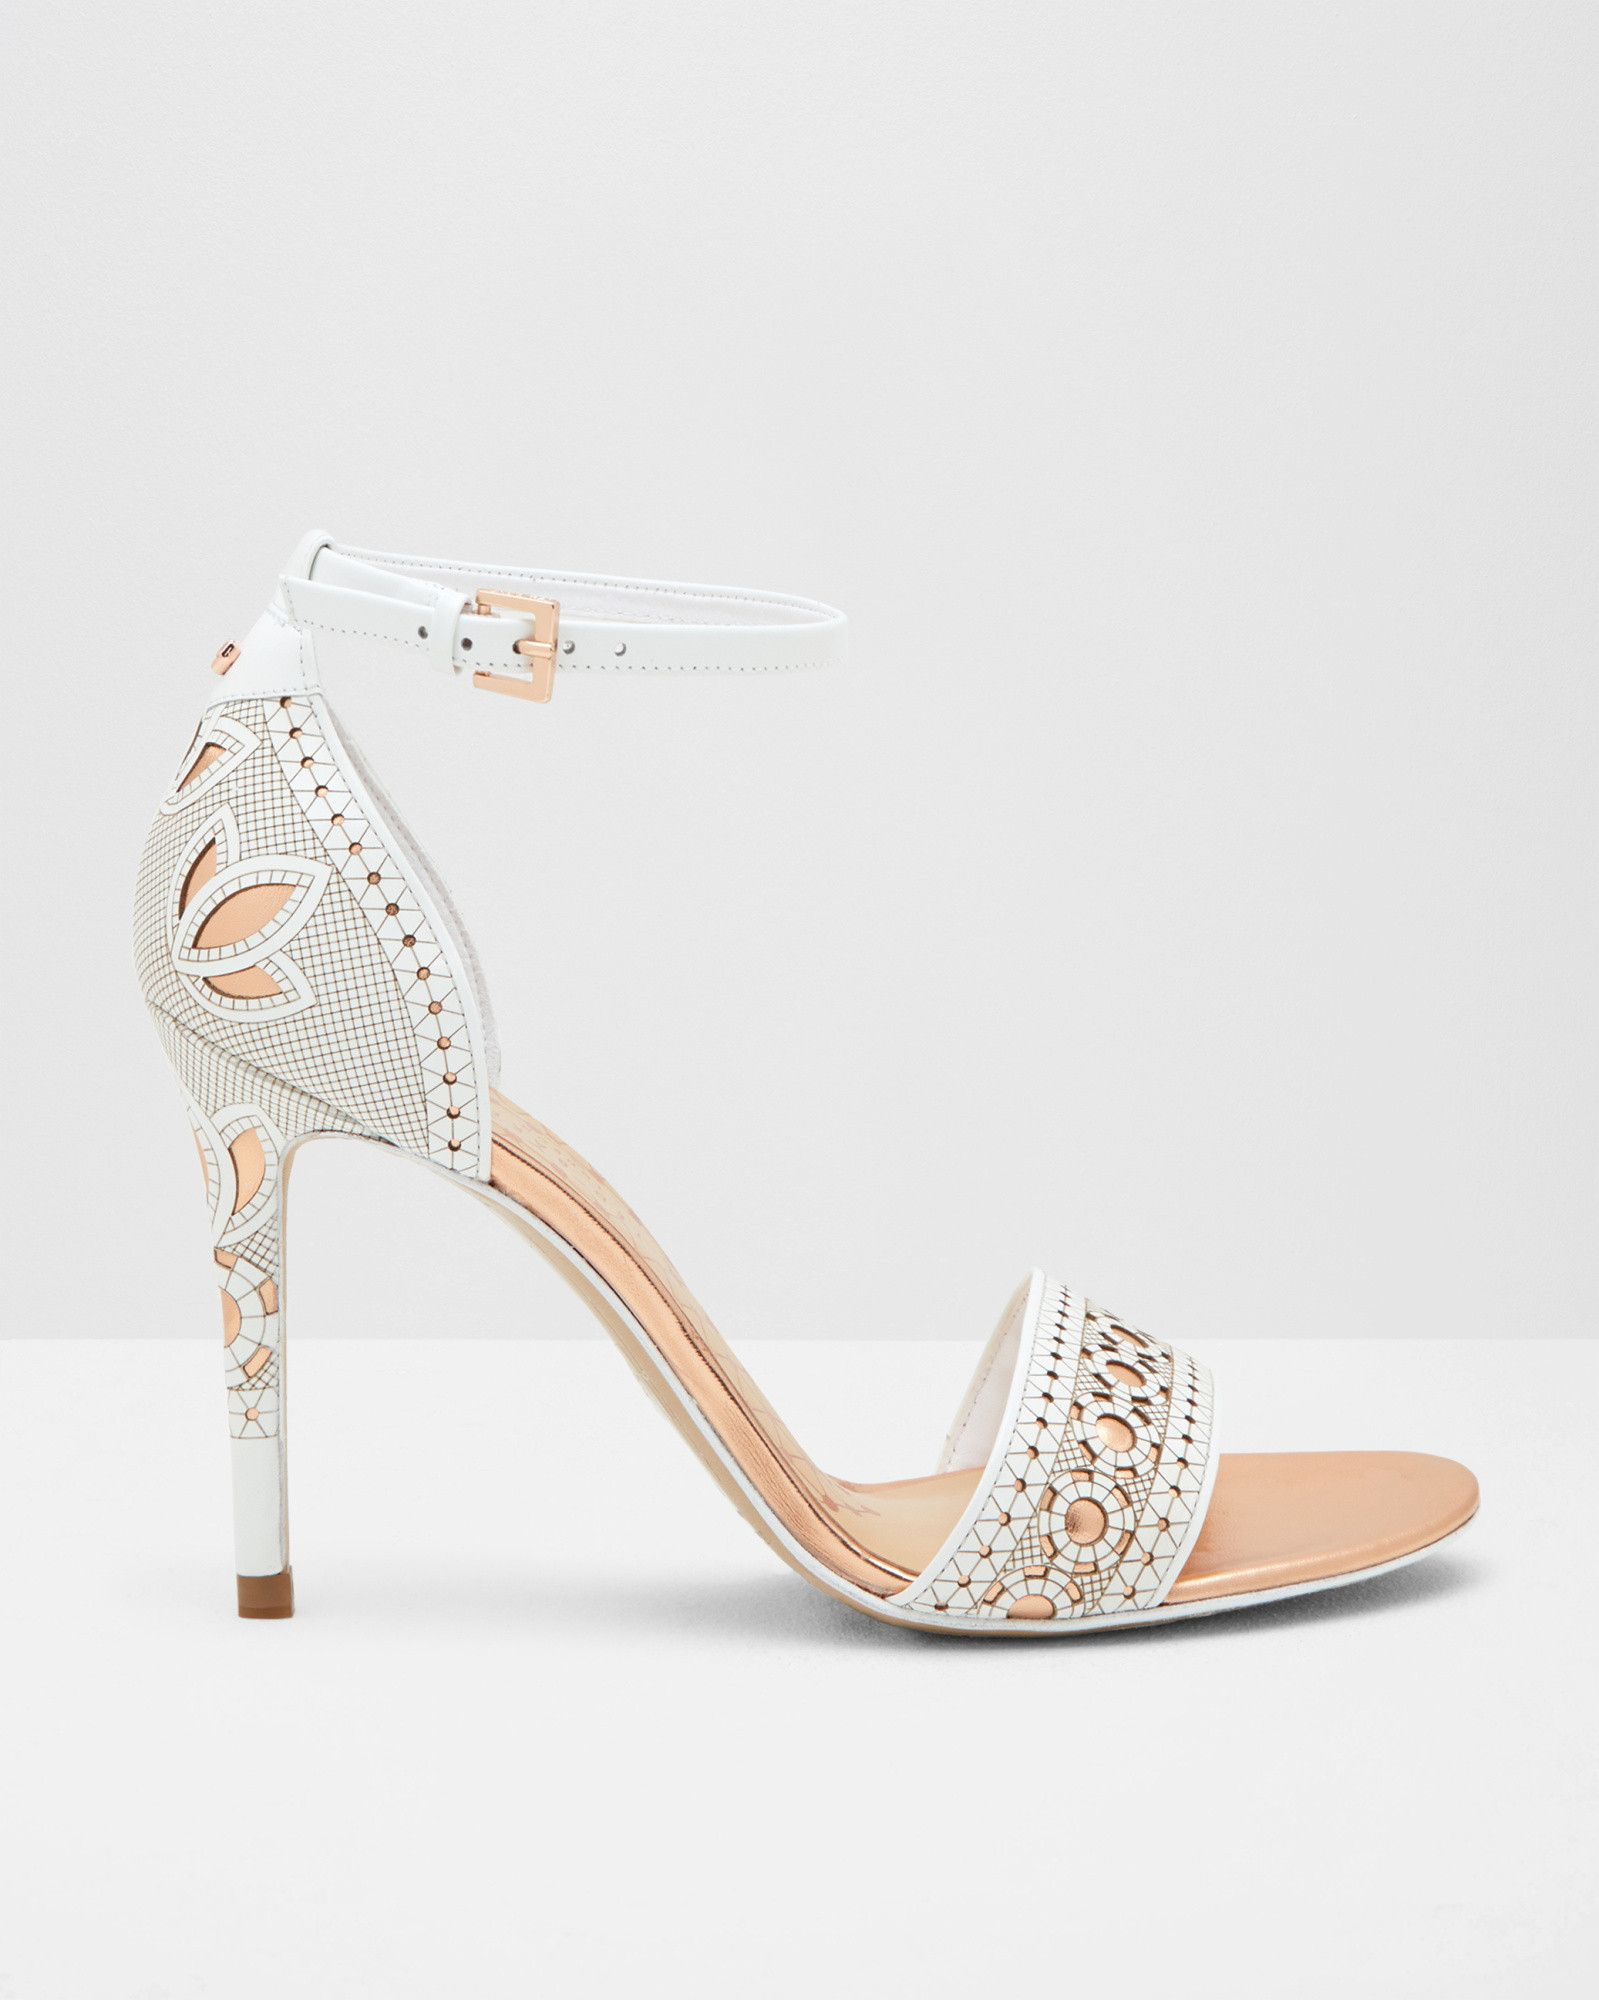 Womens Accessories | Designer Bags, Shoes & Purses for Women | Ted Baker